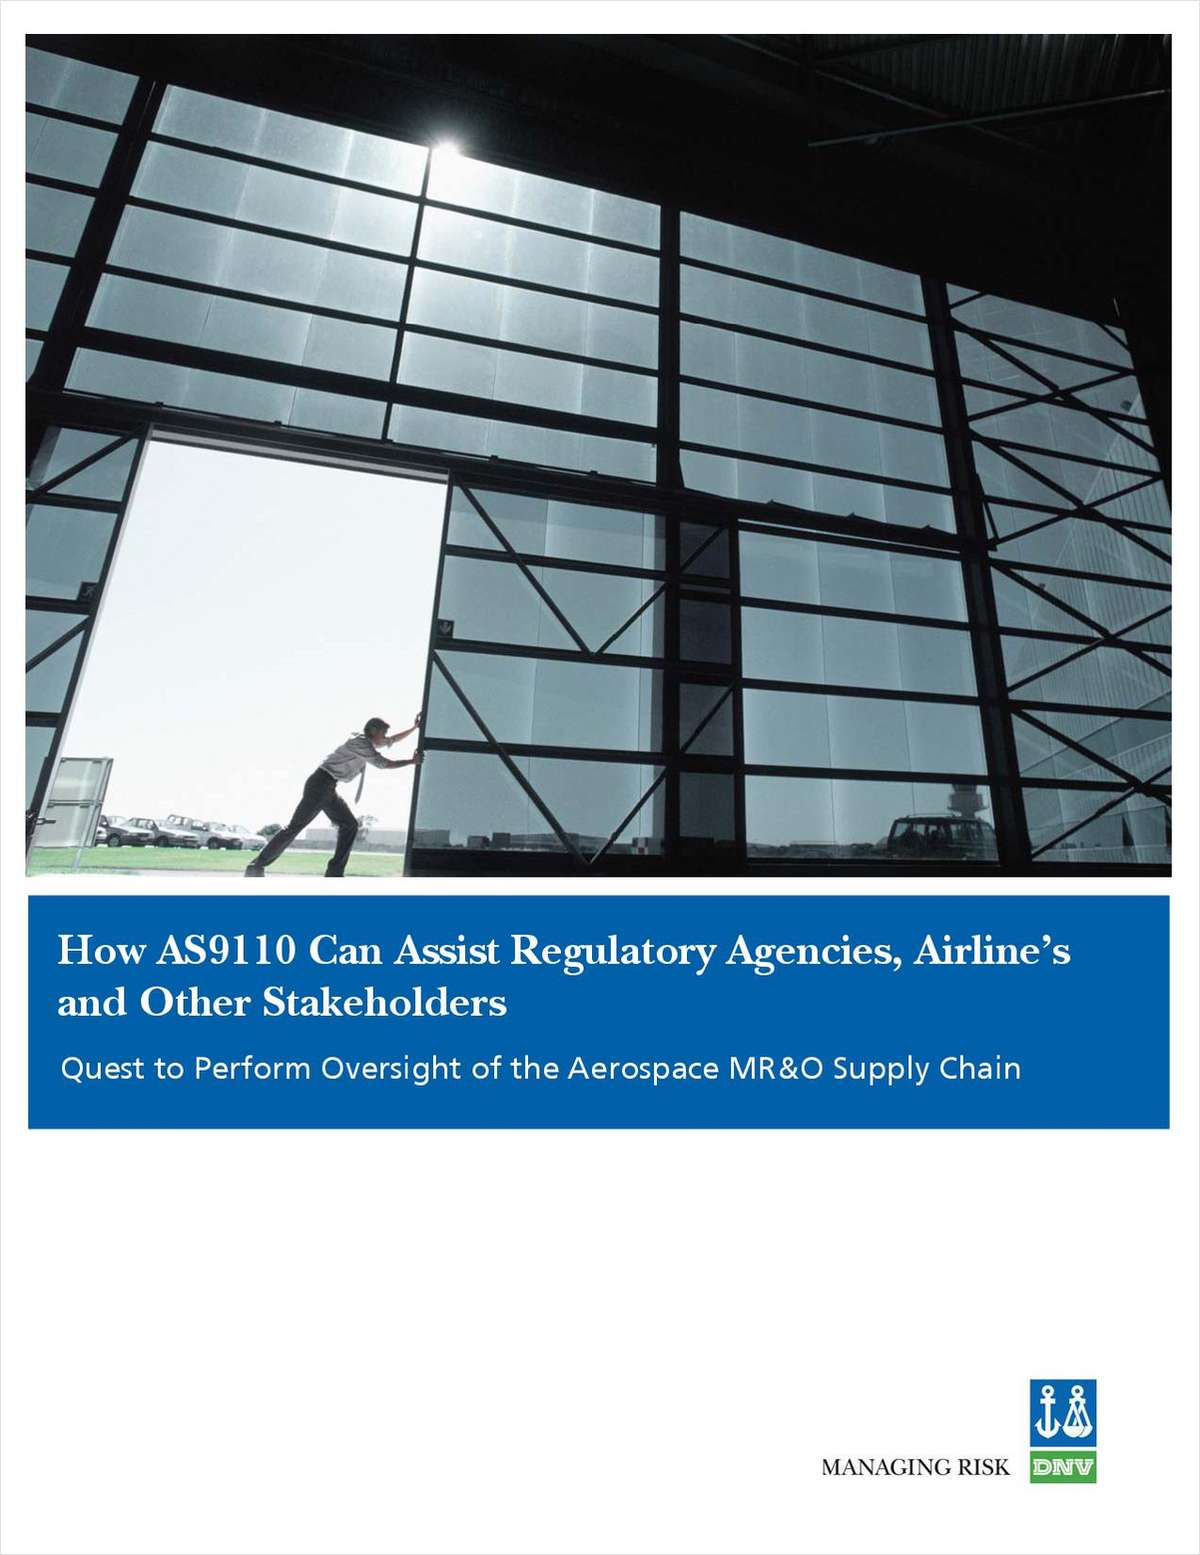 How AS9110 Can Assist Regulatory Agencies, Airlines and Other Stakeholders